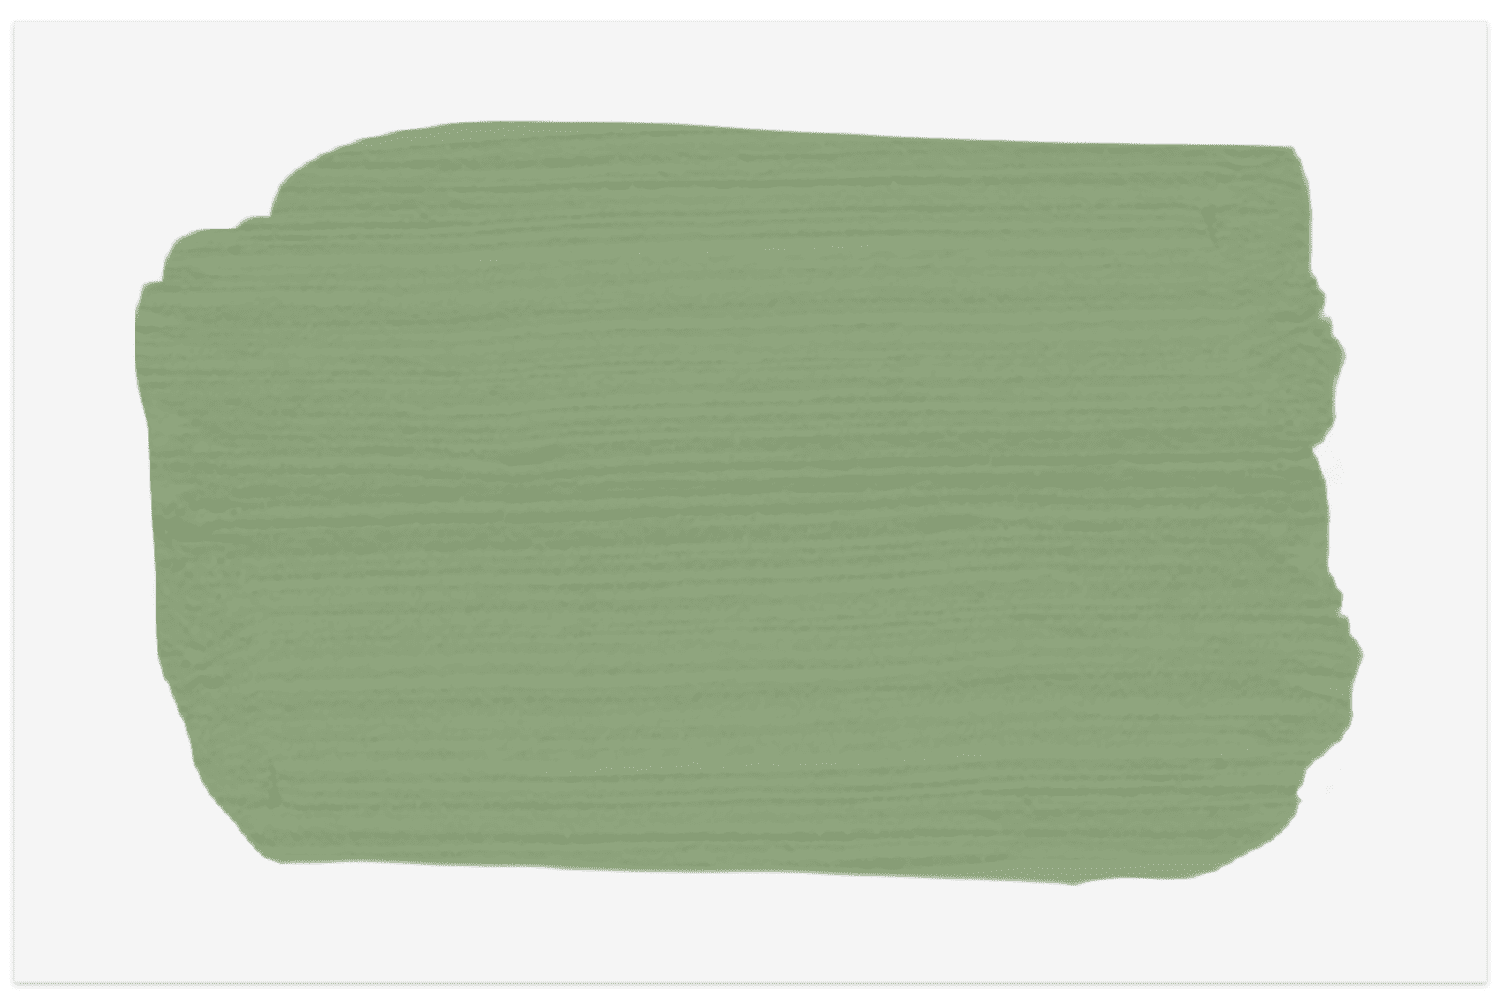 Avocado Toast paint swatch from Clare